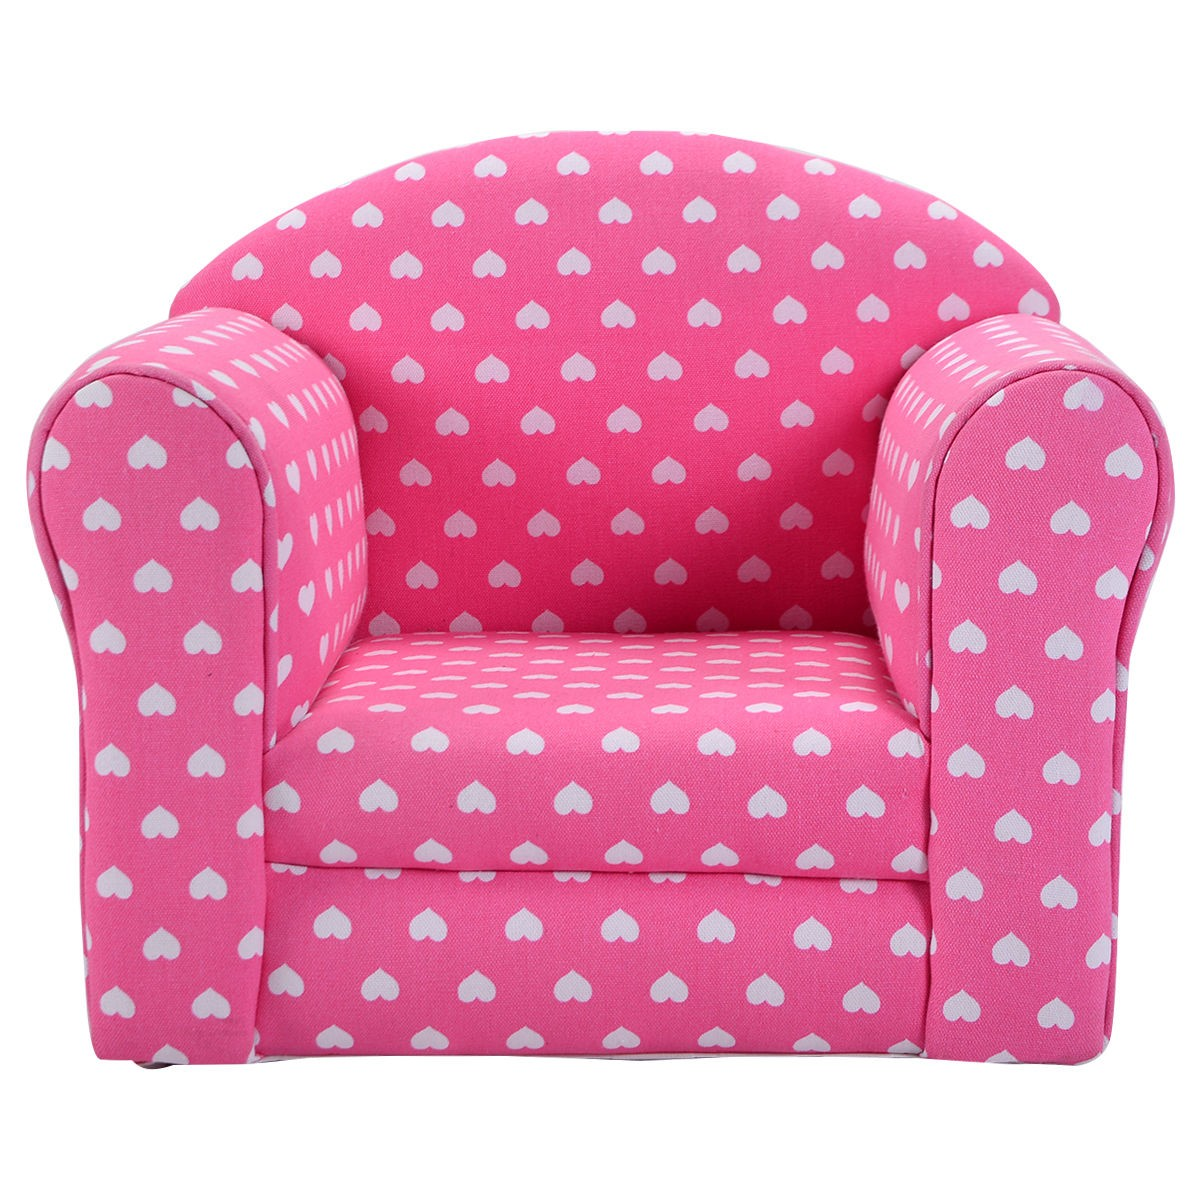 Baby Kids Sofa Armrest Chair Couch Children Living Room